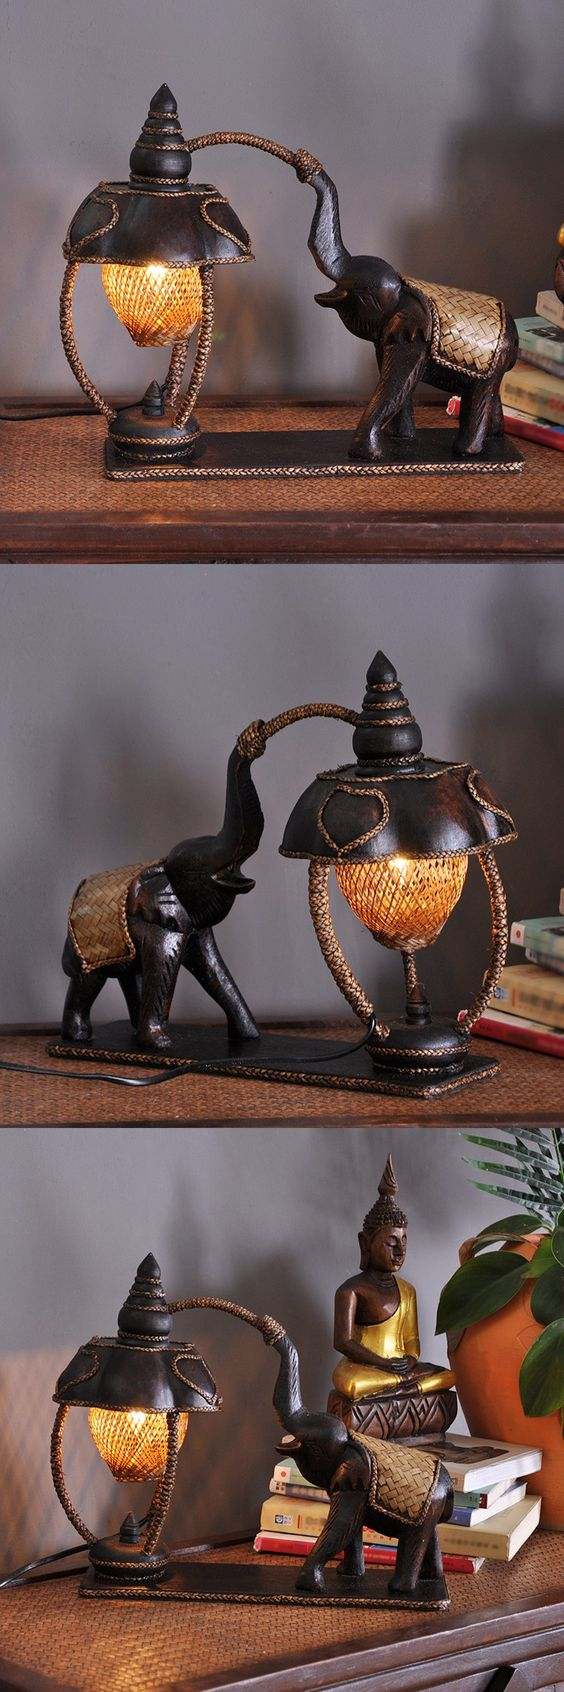 desk lamps indoor lighting southeast asian elephant bamboo lamp